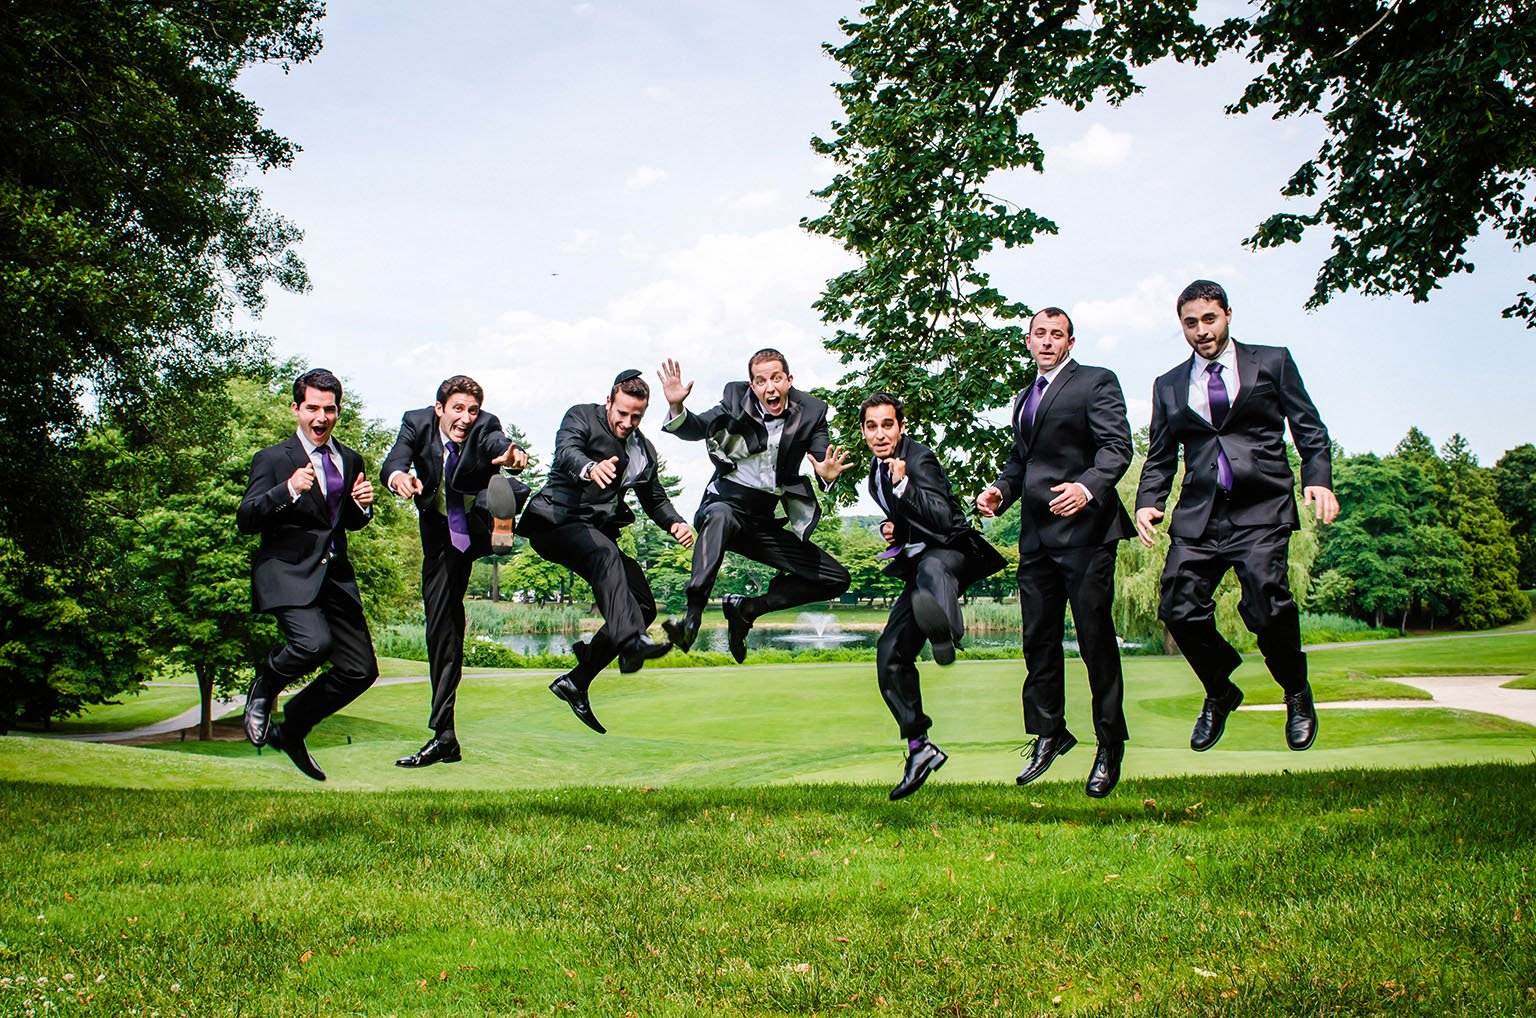 Wedding-Photo-Golf-Country-Club Photojournalism